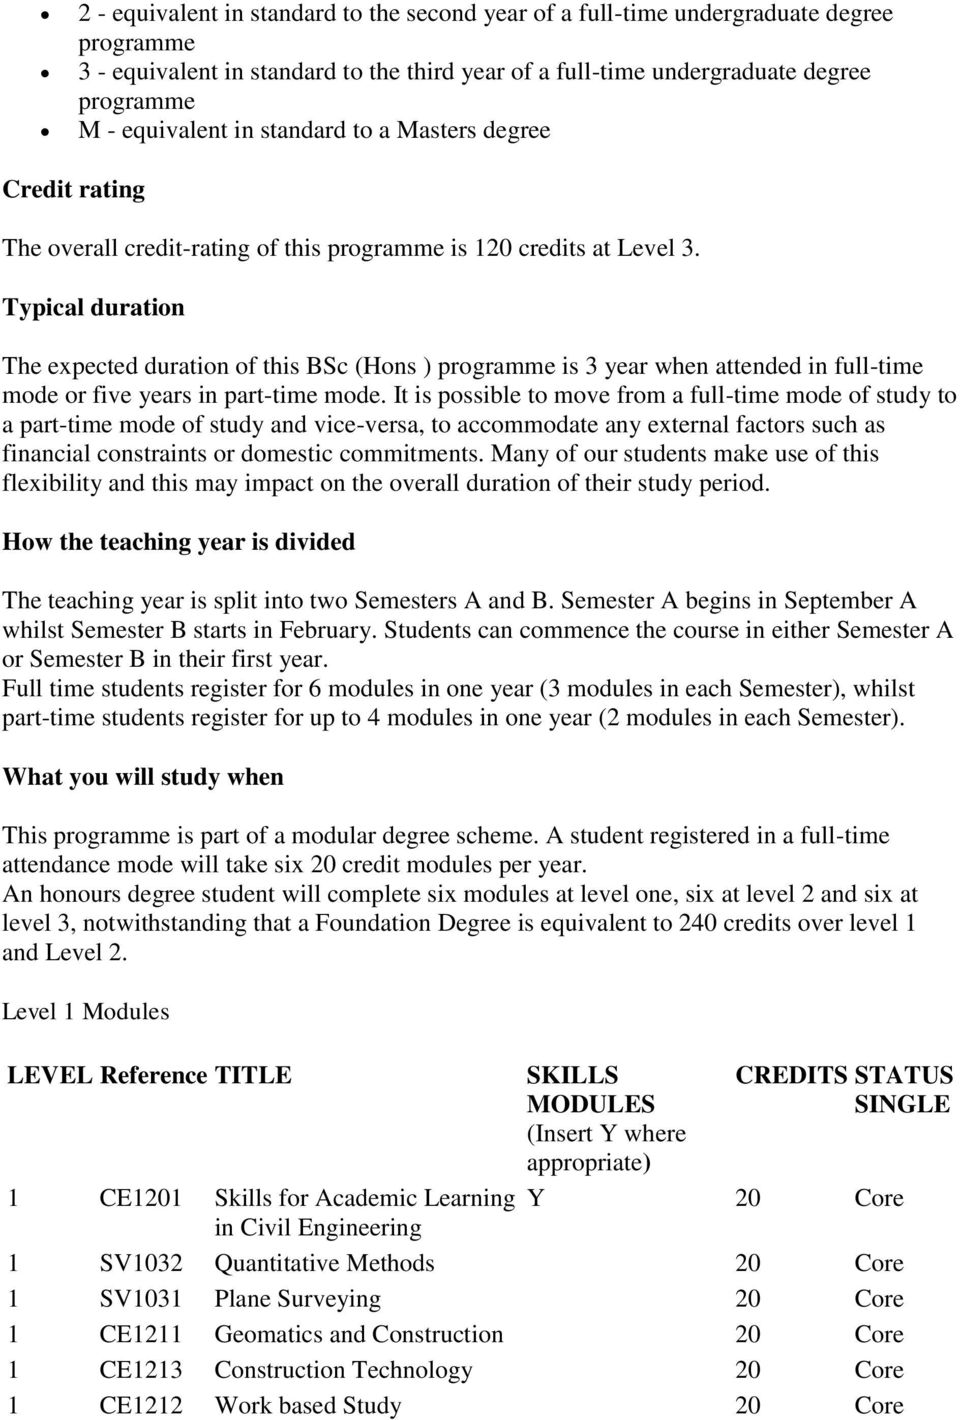 Typical duration The expected duration of this BSc (Hons ) programme is 3 year when attended in full-time mode or five years in part-time mode.